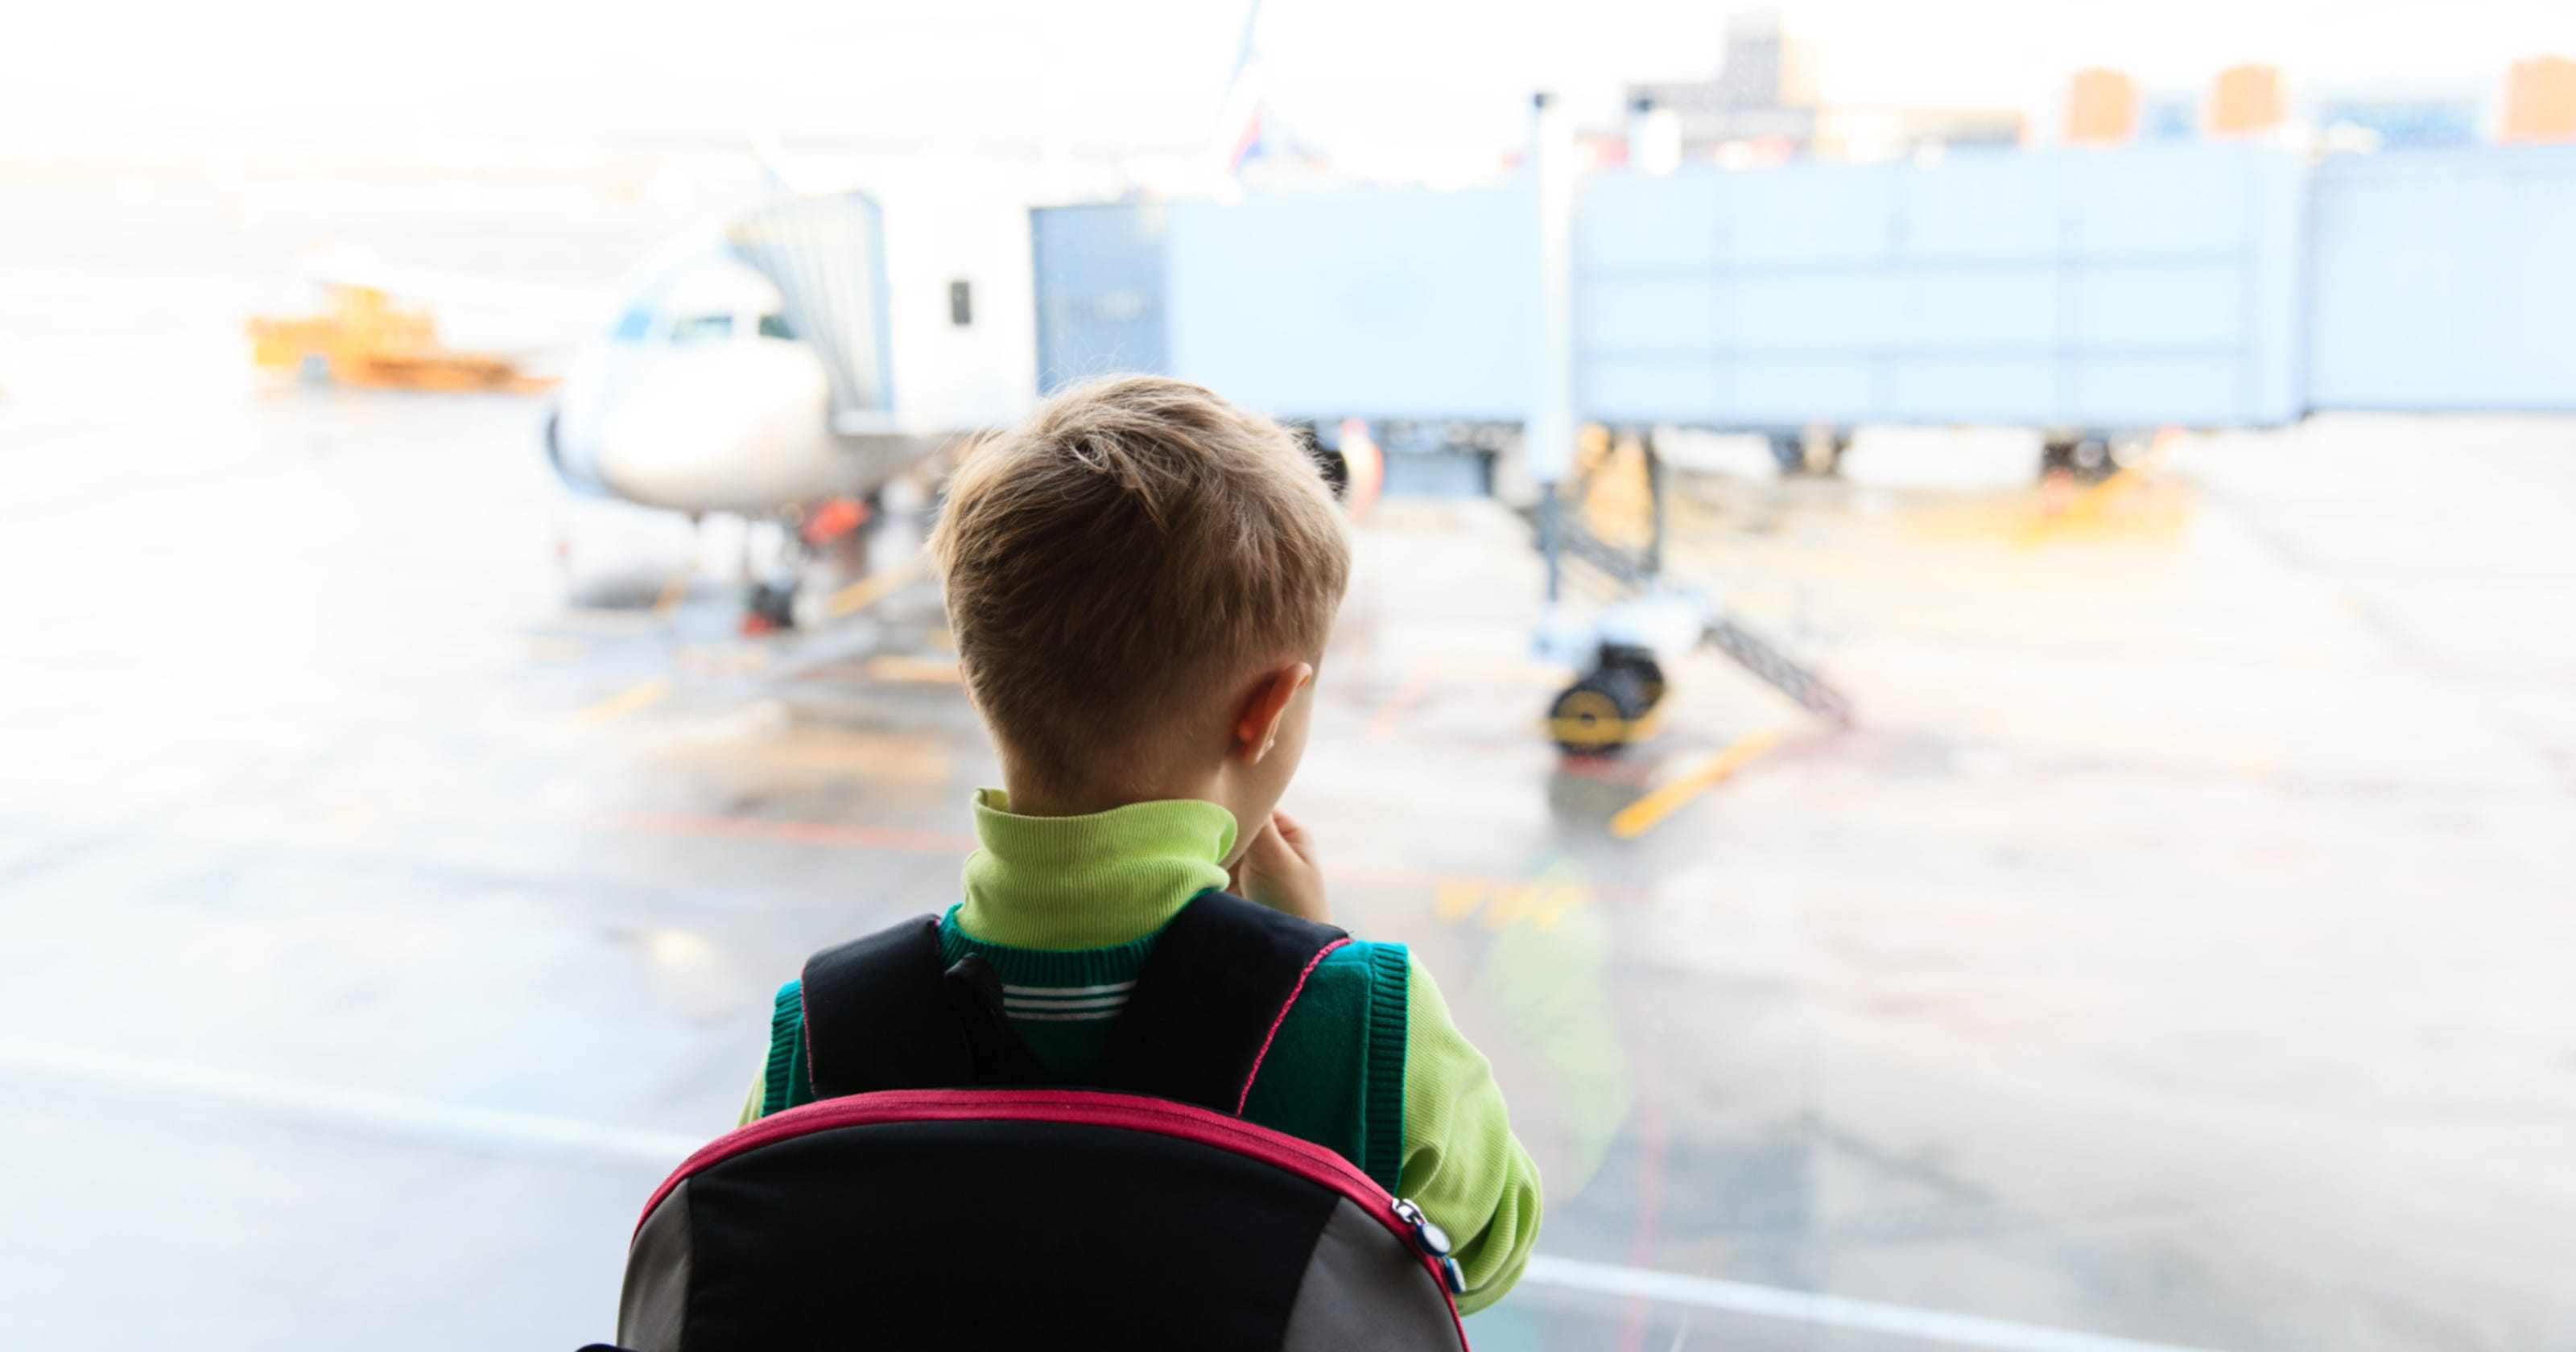 Unaccompanied minors flying: What you need to know